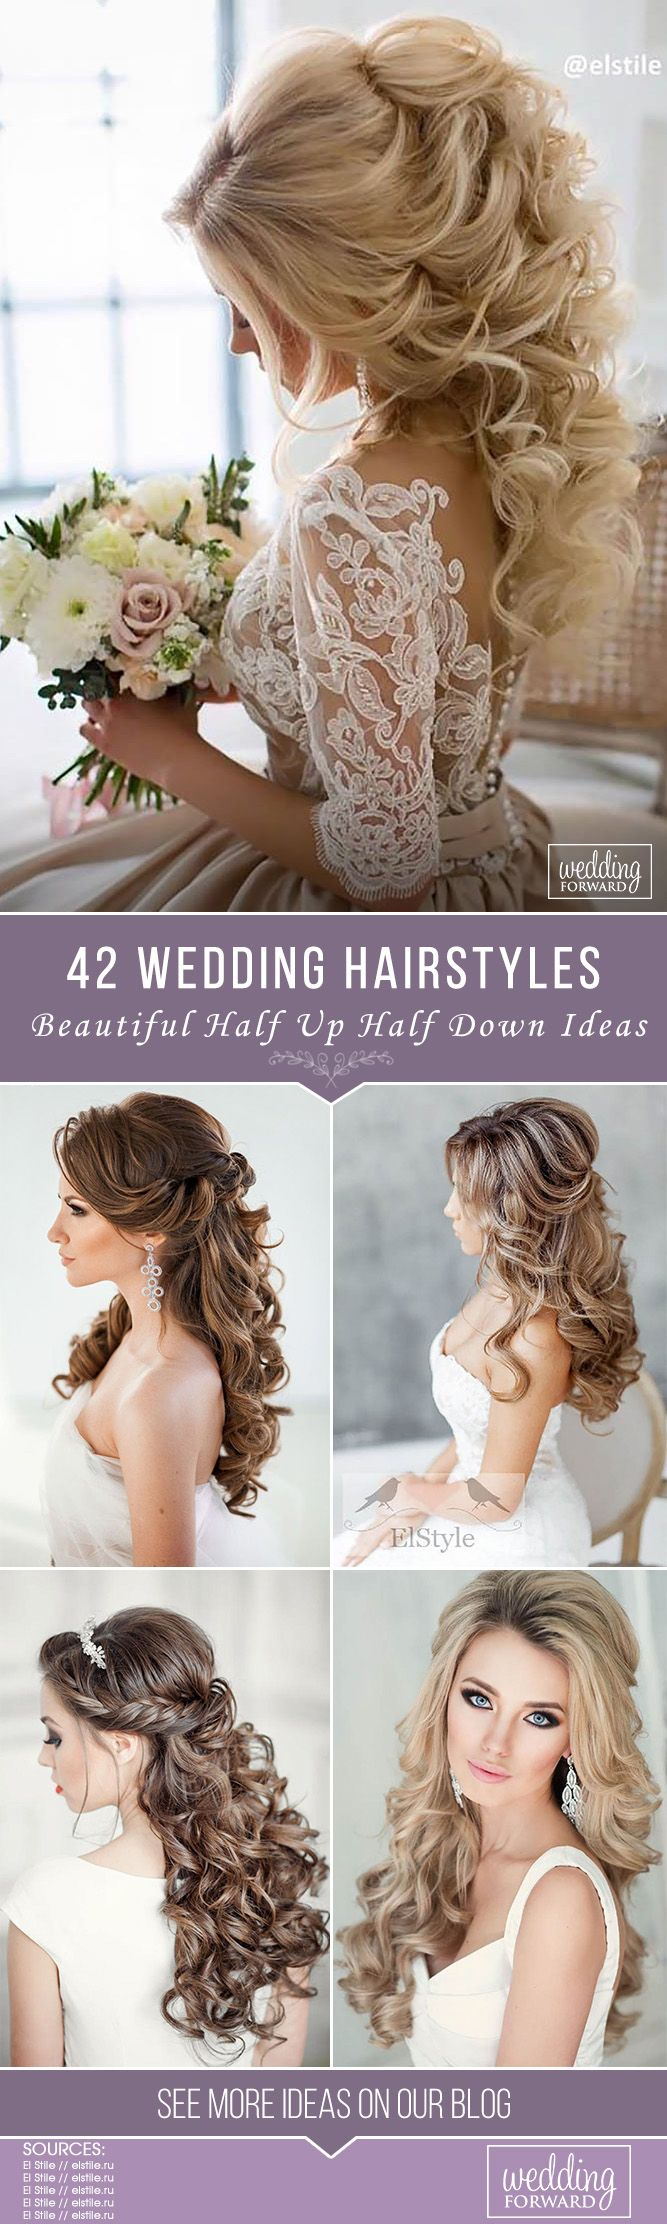 42 Stunning Half Up Half Down Wedding Hairstyles ❤ We have collected elegant c...